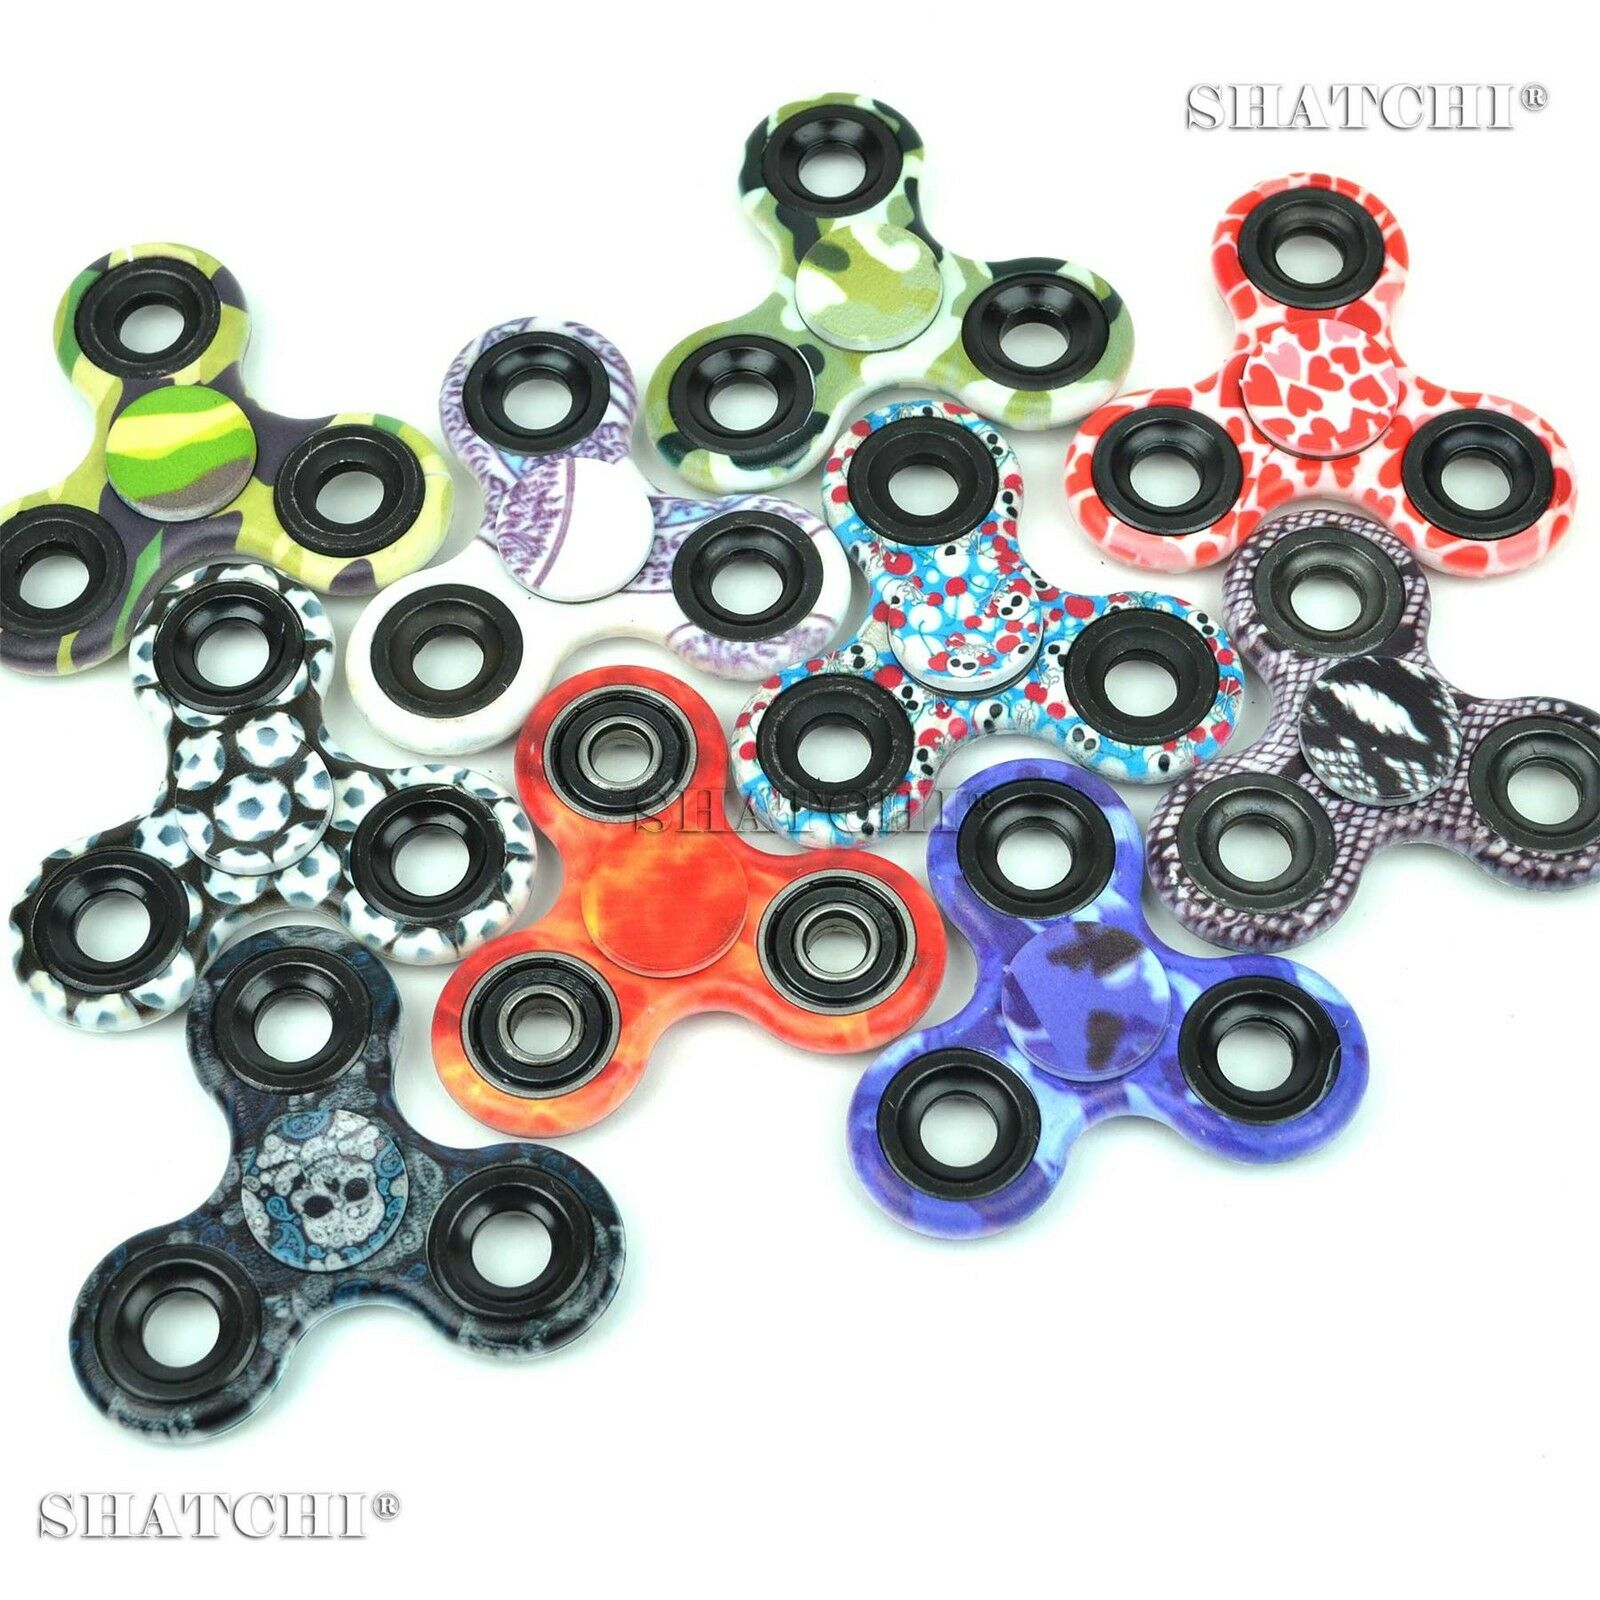 100 Printed Camo camouflage tri spinner Fidget Hand UK Seller Party Bag Fillers